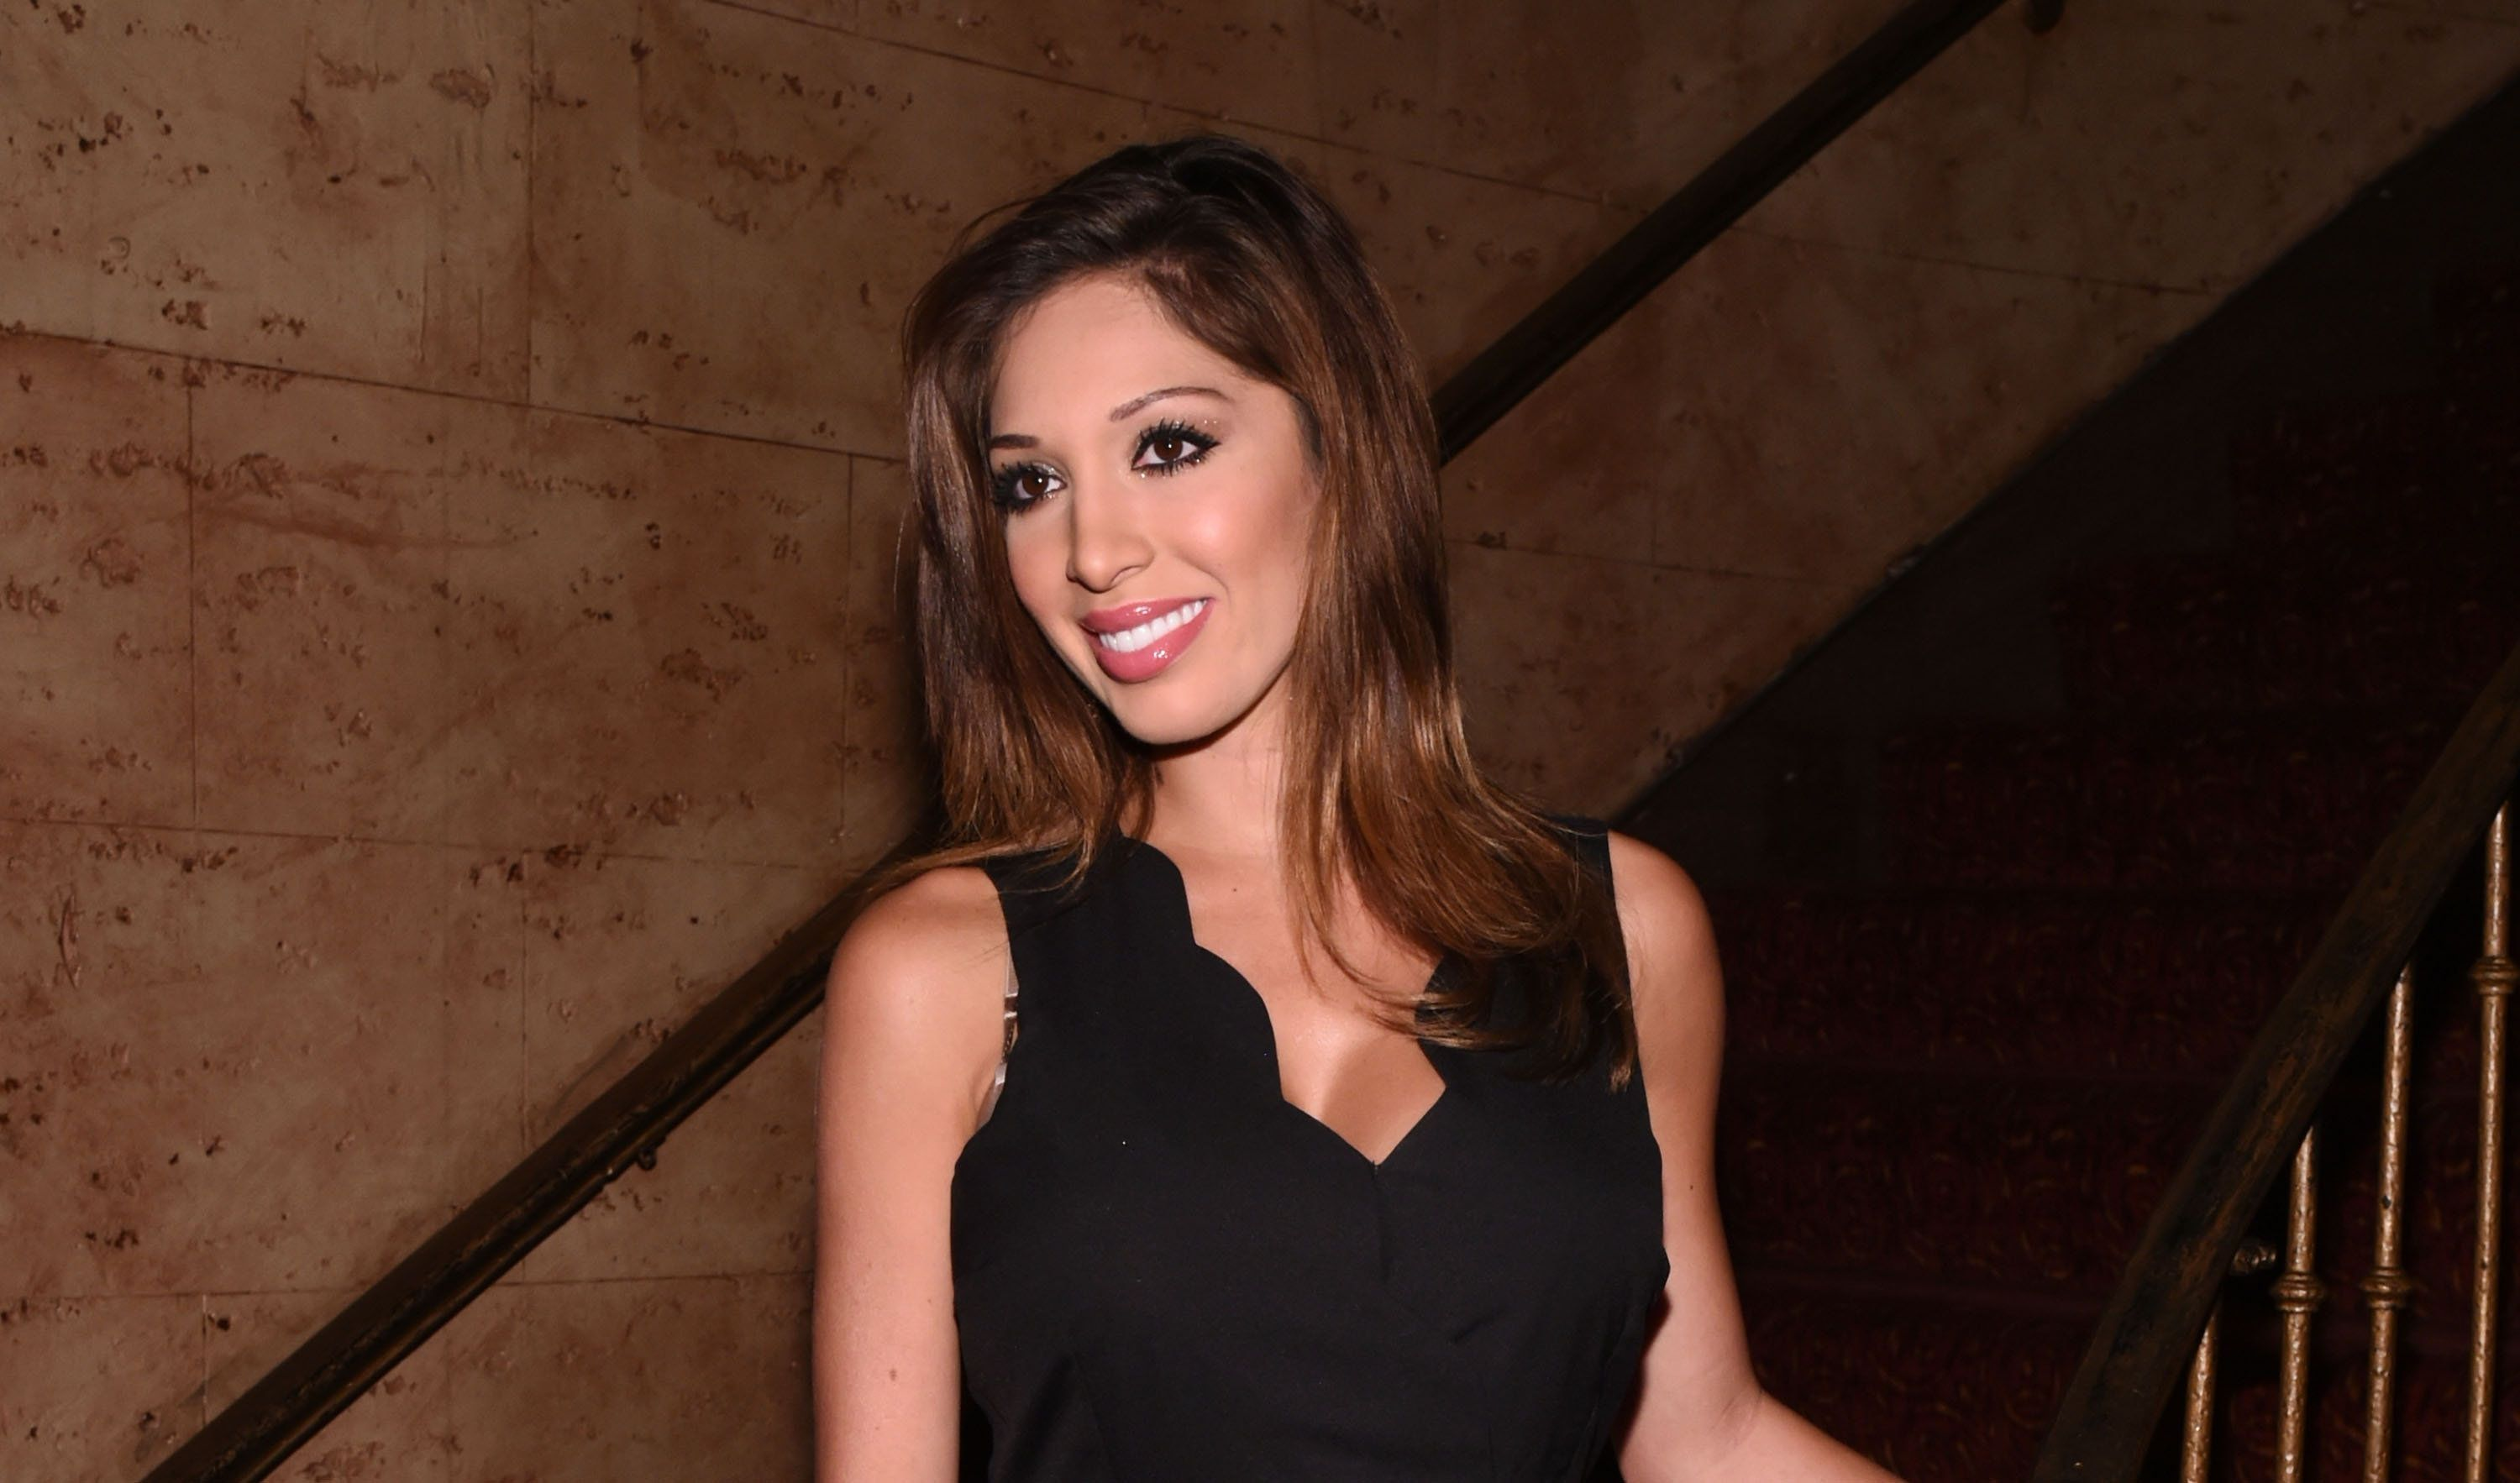 NEW YORK, NY - AUGUST 06:  TV personality Farrah Abraham attends 'The Runner' New York Special Screening at Village East Cinema on August 6, 2015 in New York City.  (Photo by Ilya S. Savenok/Getty Images)